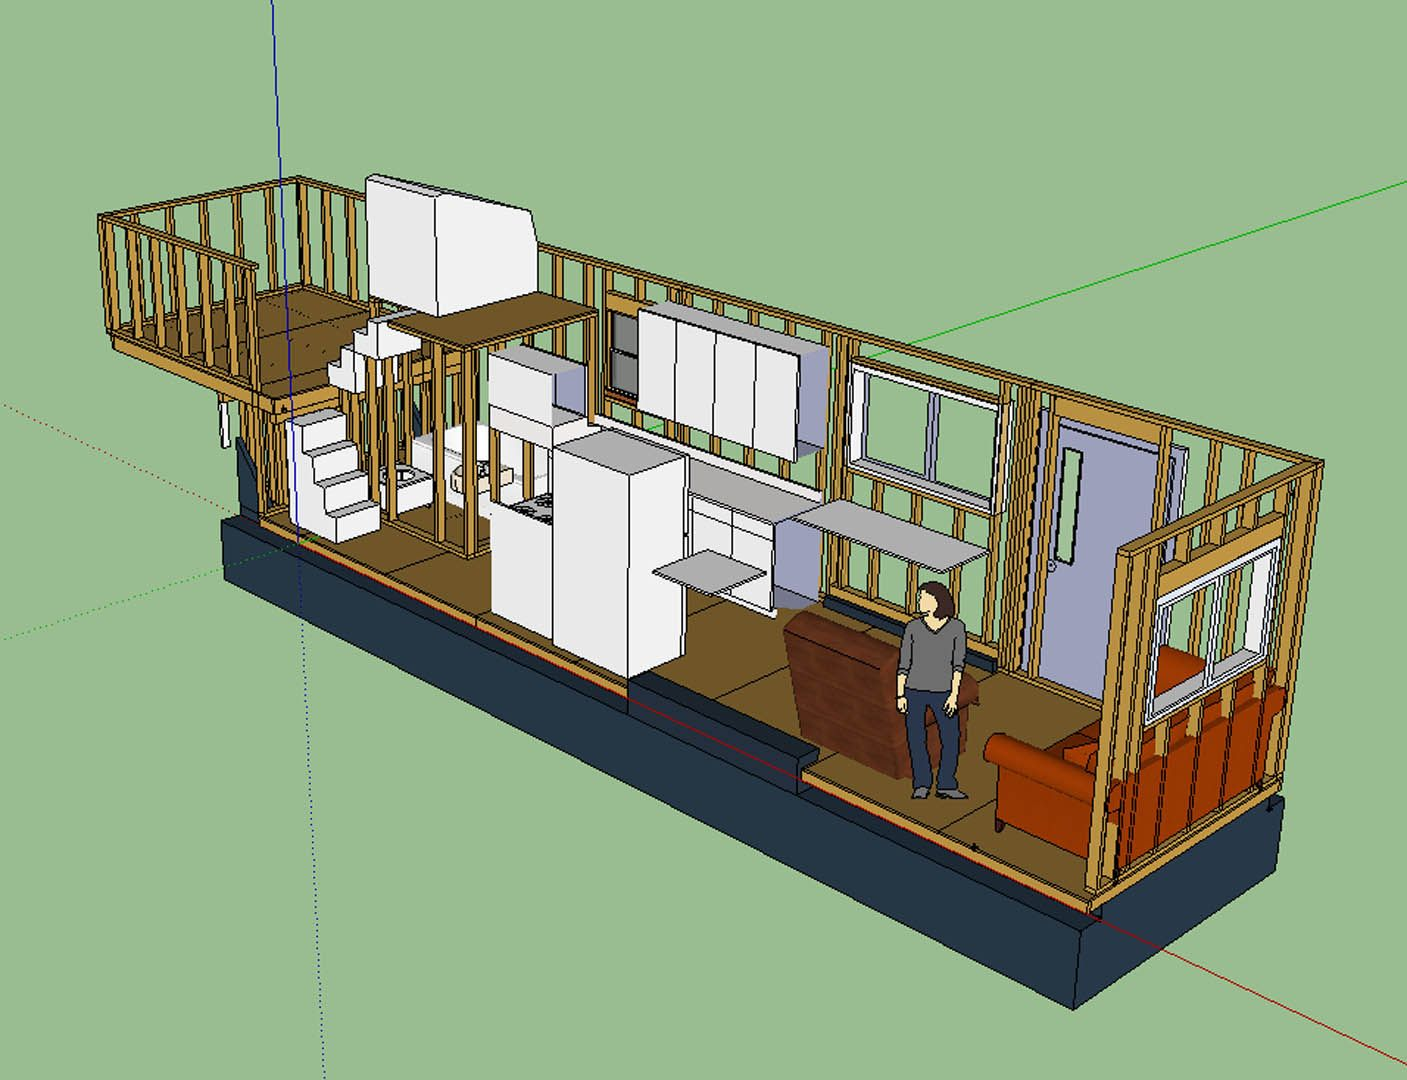 Tiny House Layout has master bedroom over fifth